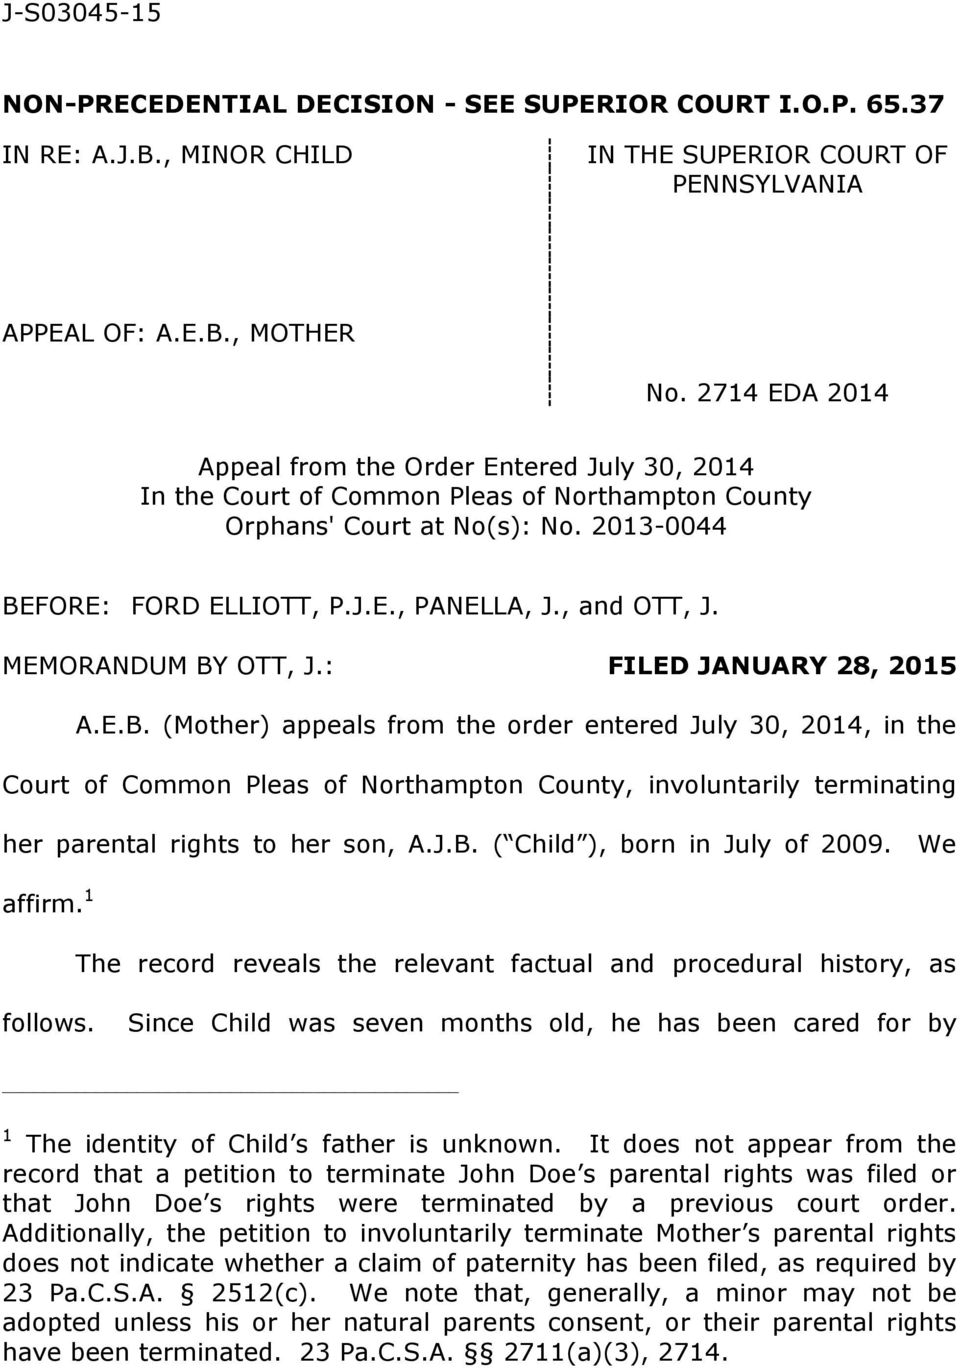 , and OTT, J. MEMORANDUM BY OTT, J.: FILED JANUARY 28, 2015 A.E.B. (Mother) appeals from the order entered July 30, 2014, in the Court of Common Pleas of Northampton County, involuntarily terminating her parental rights to her son, A.